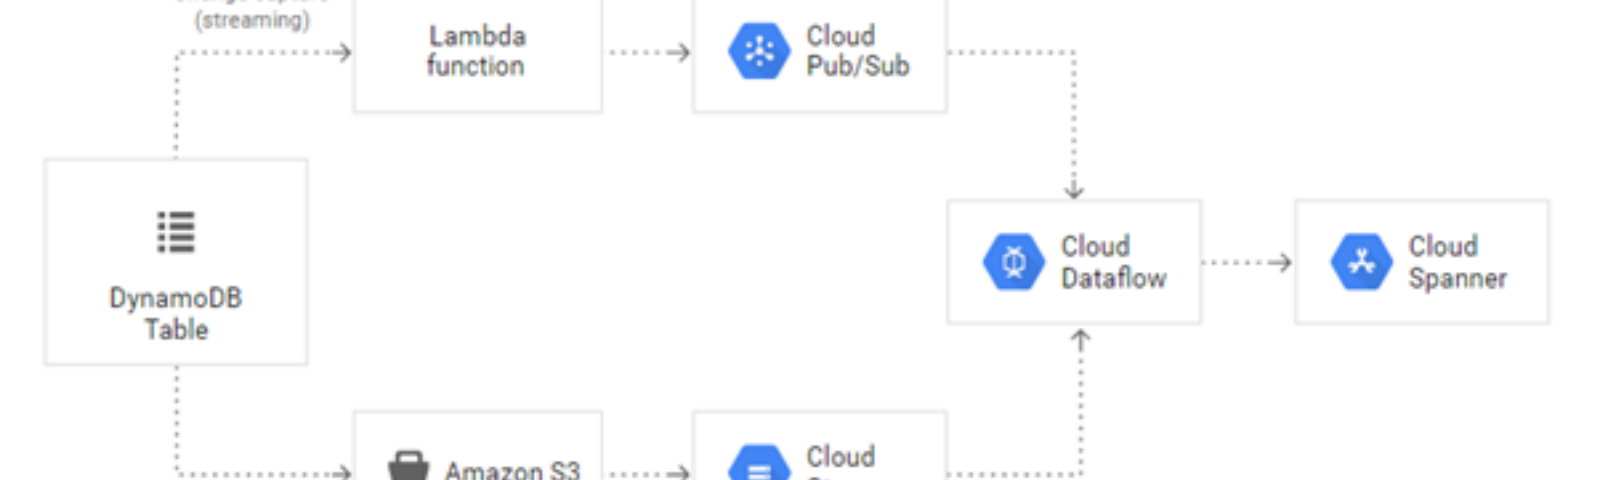 Database Migration : Migrating from DynamoDB to Google Cloud